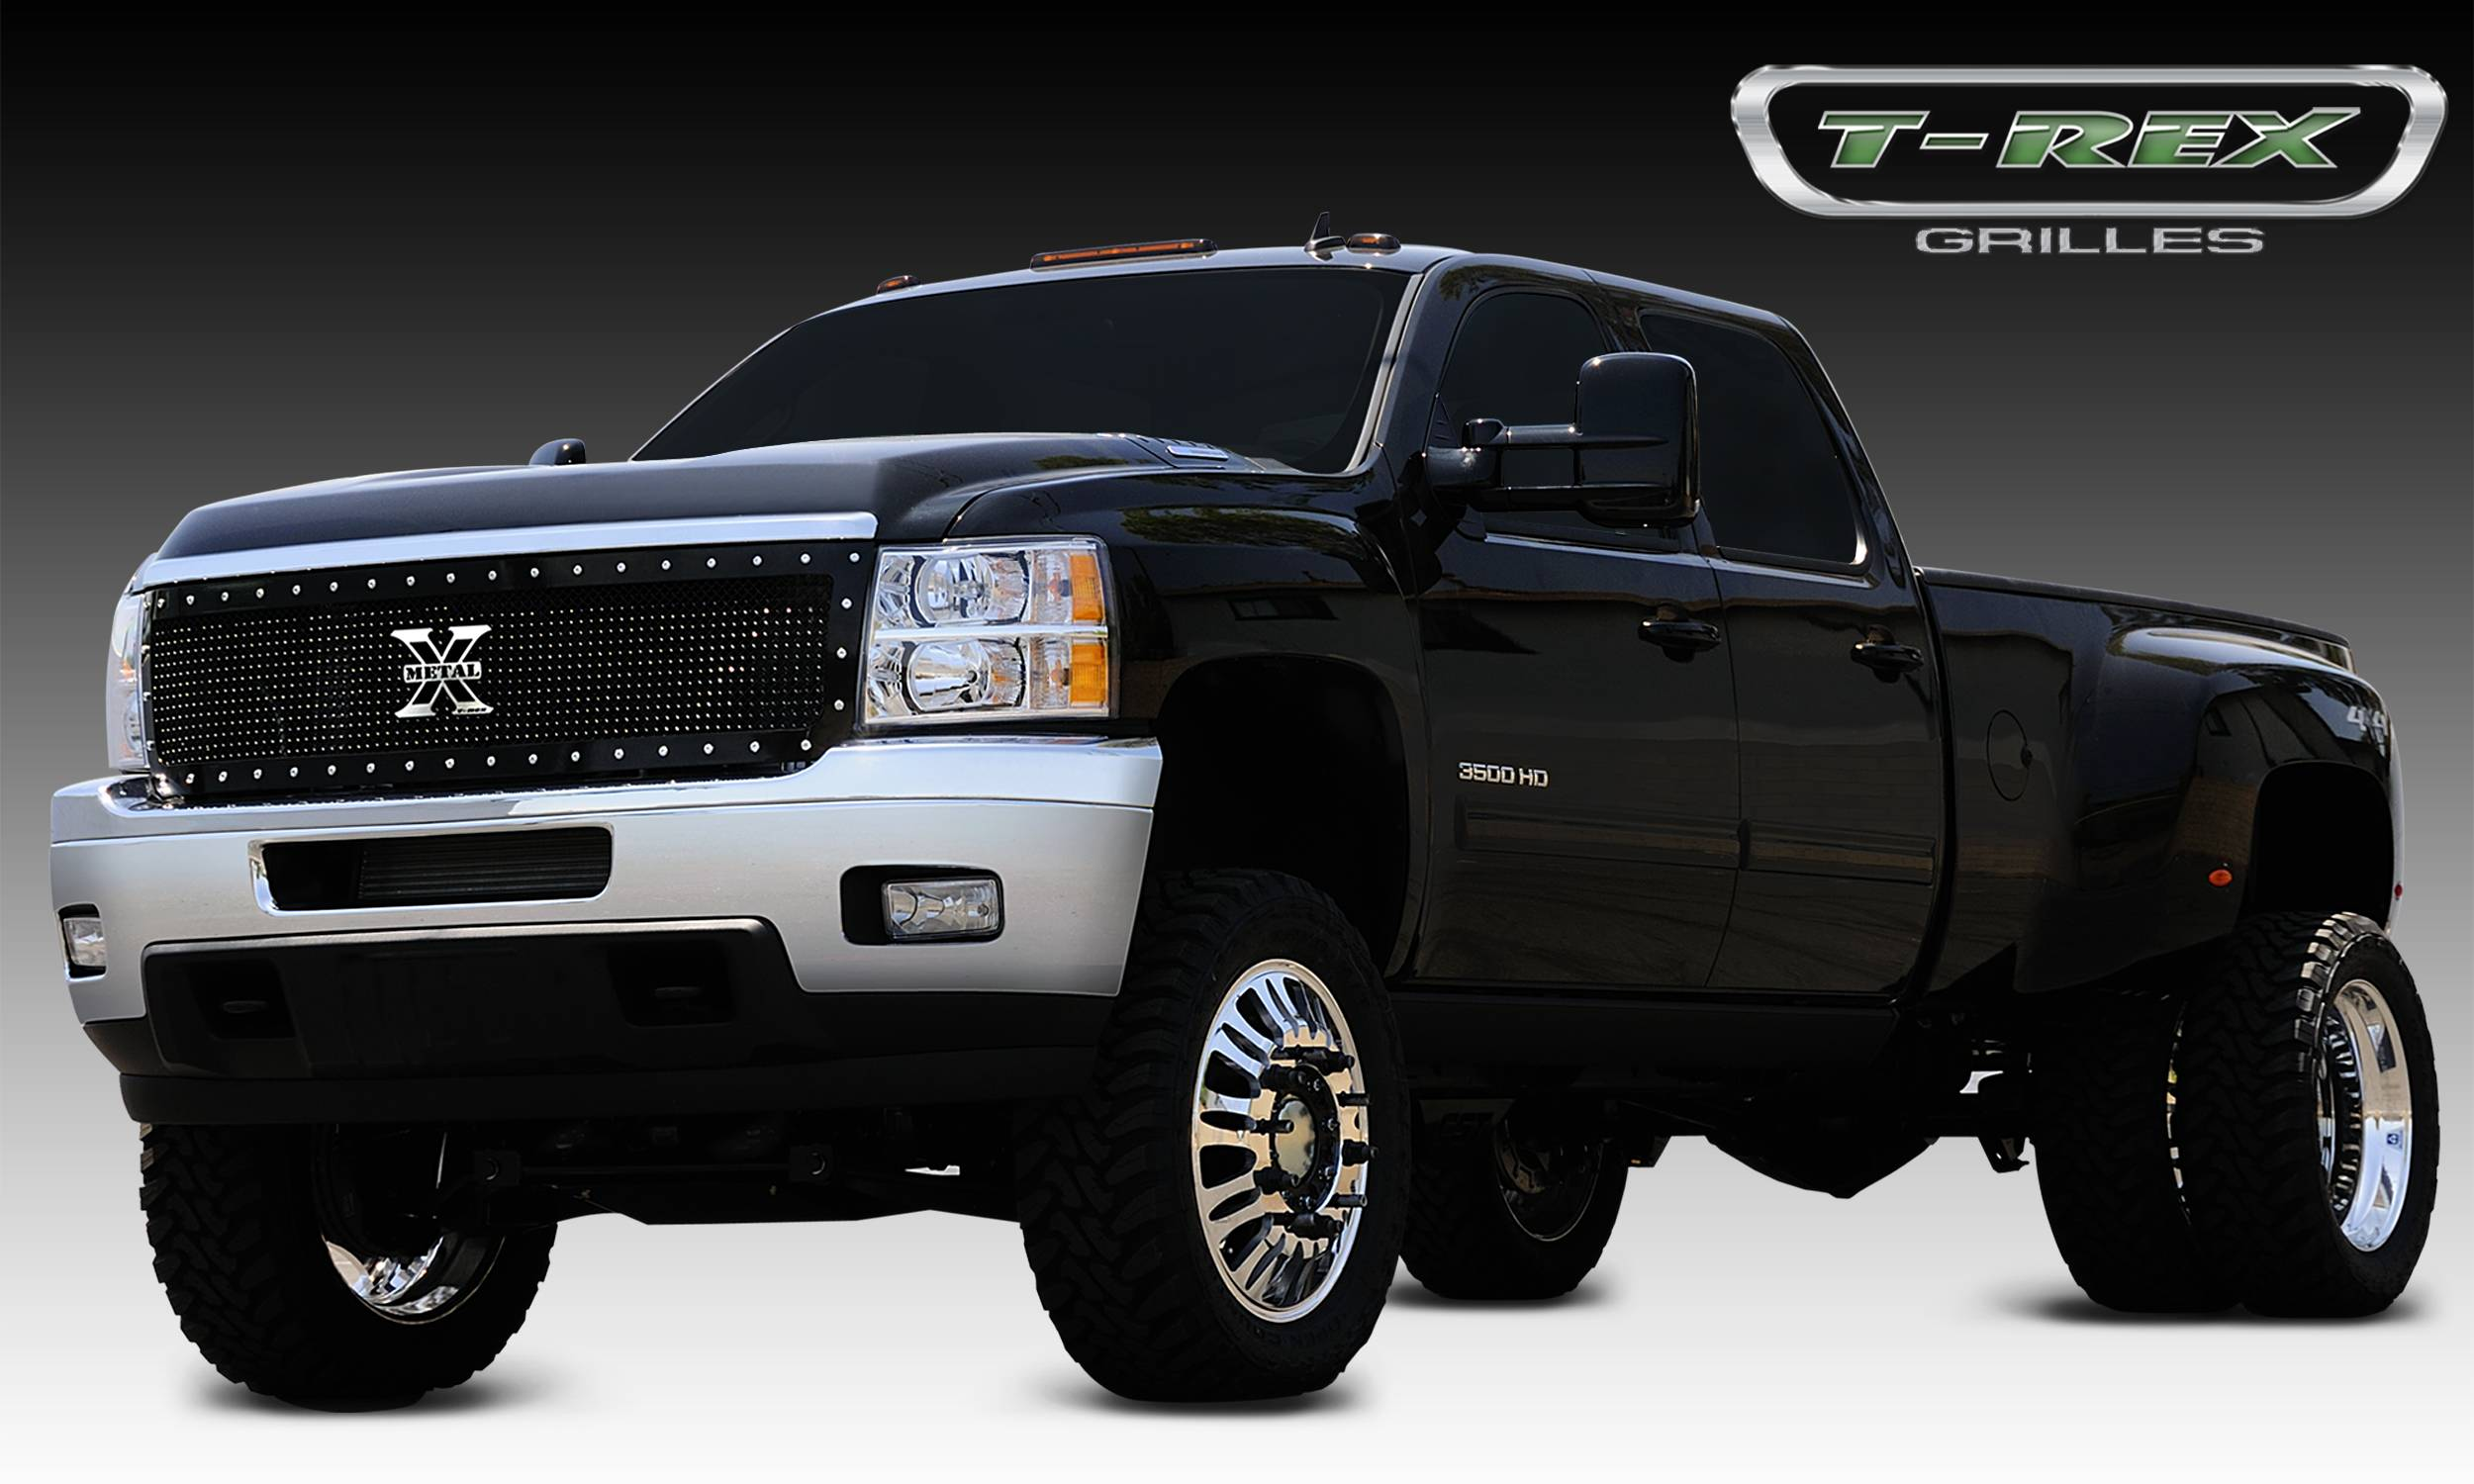 T-REX Chevrolet Silverado HD X-METAL Series - Studded Main Grille - ALL Black - Custom 1 Pc Style Replaces OE Grille UPS OS3 - Pt # 6711151